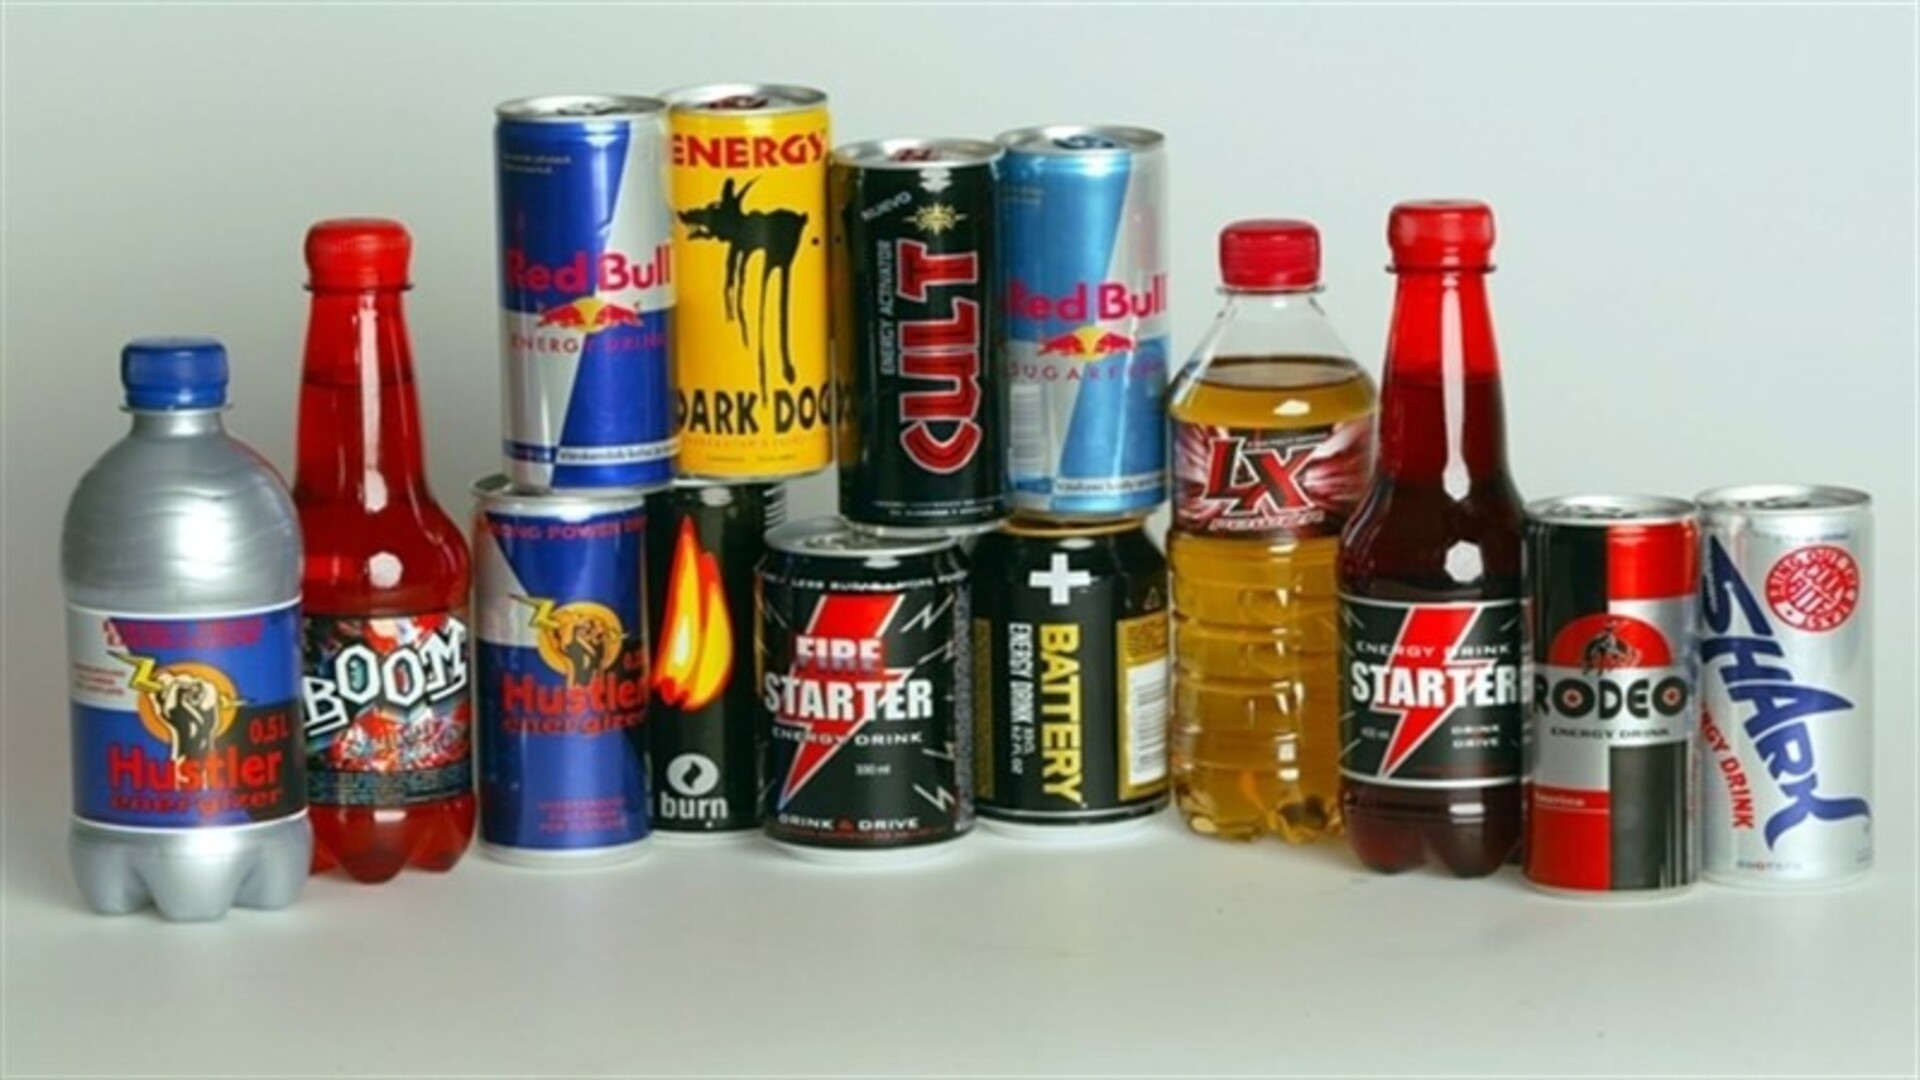 Restriction Where Energy Drinks Are Sold